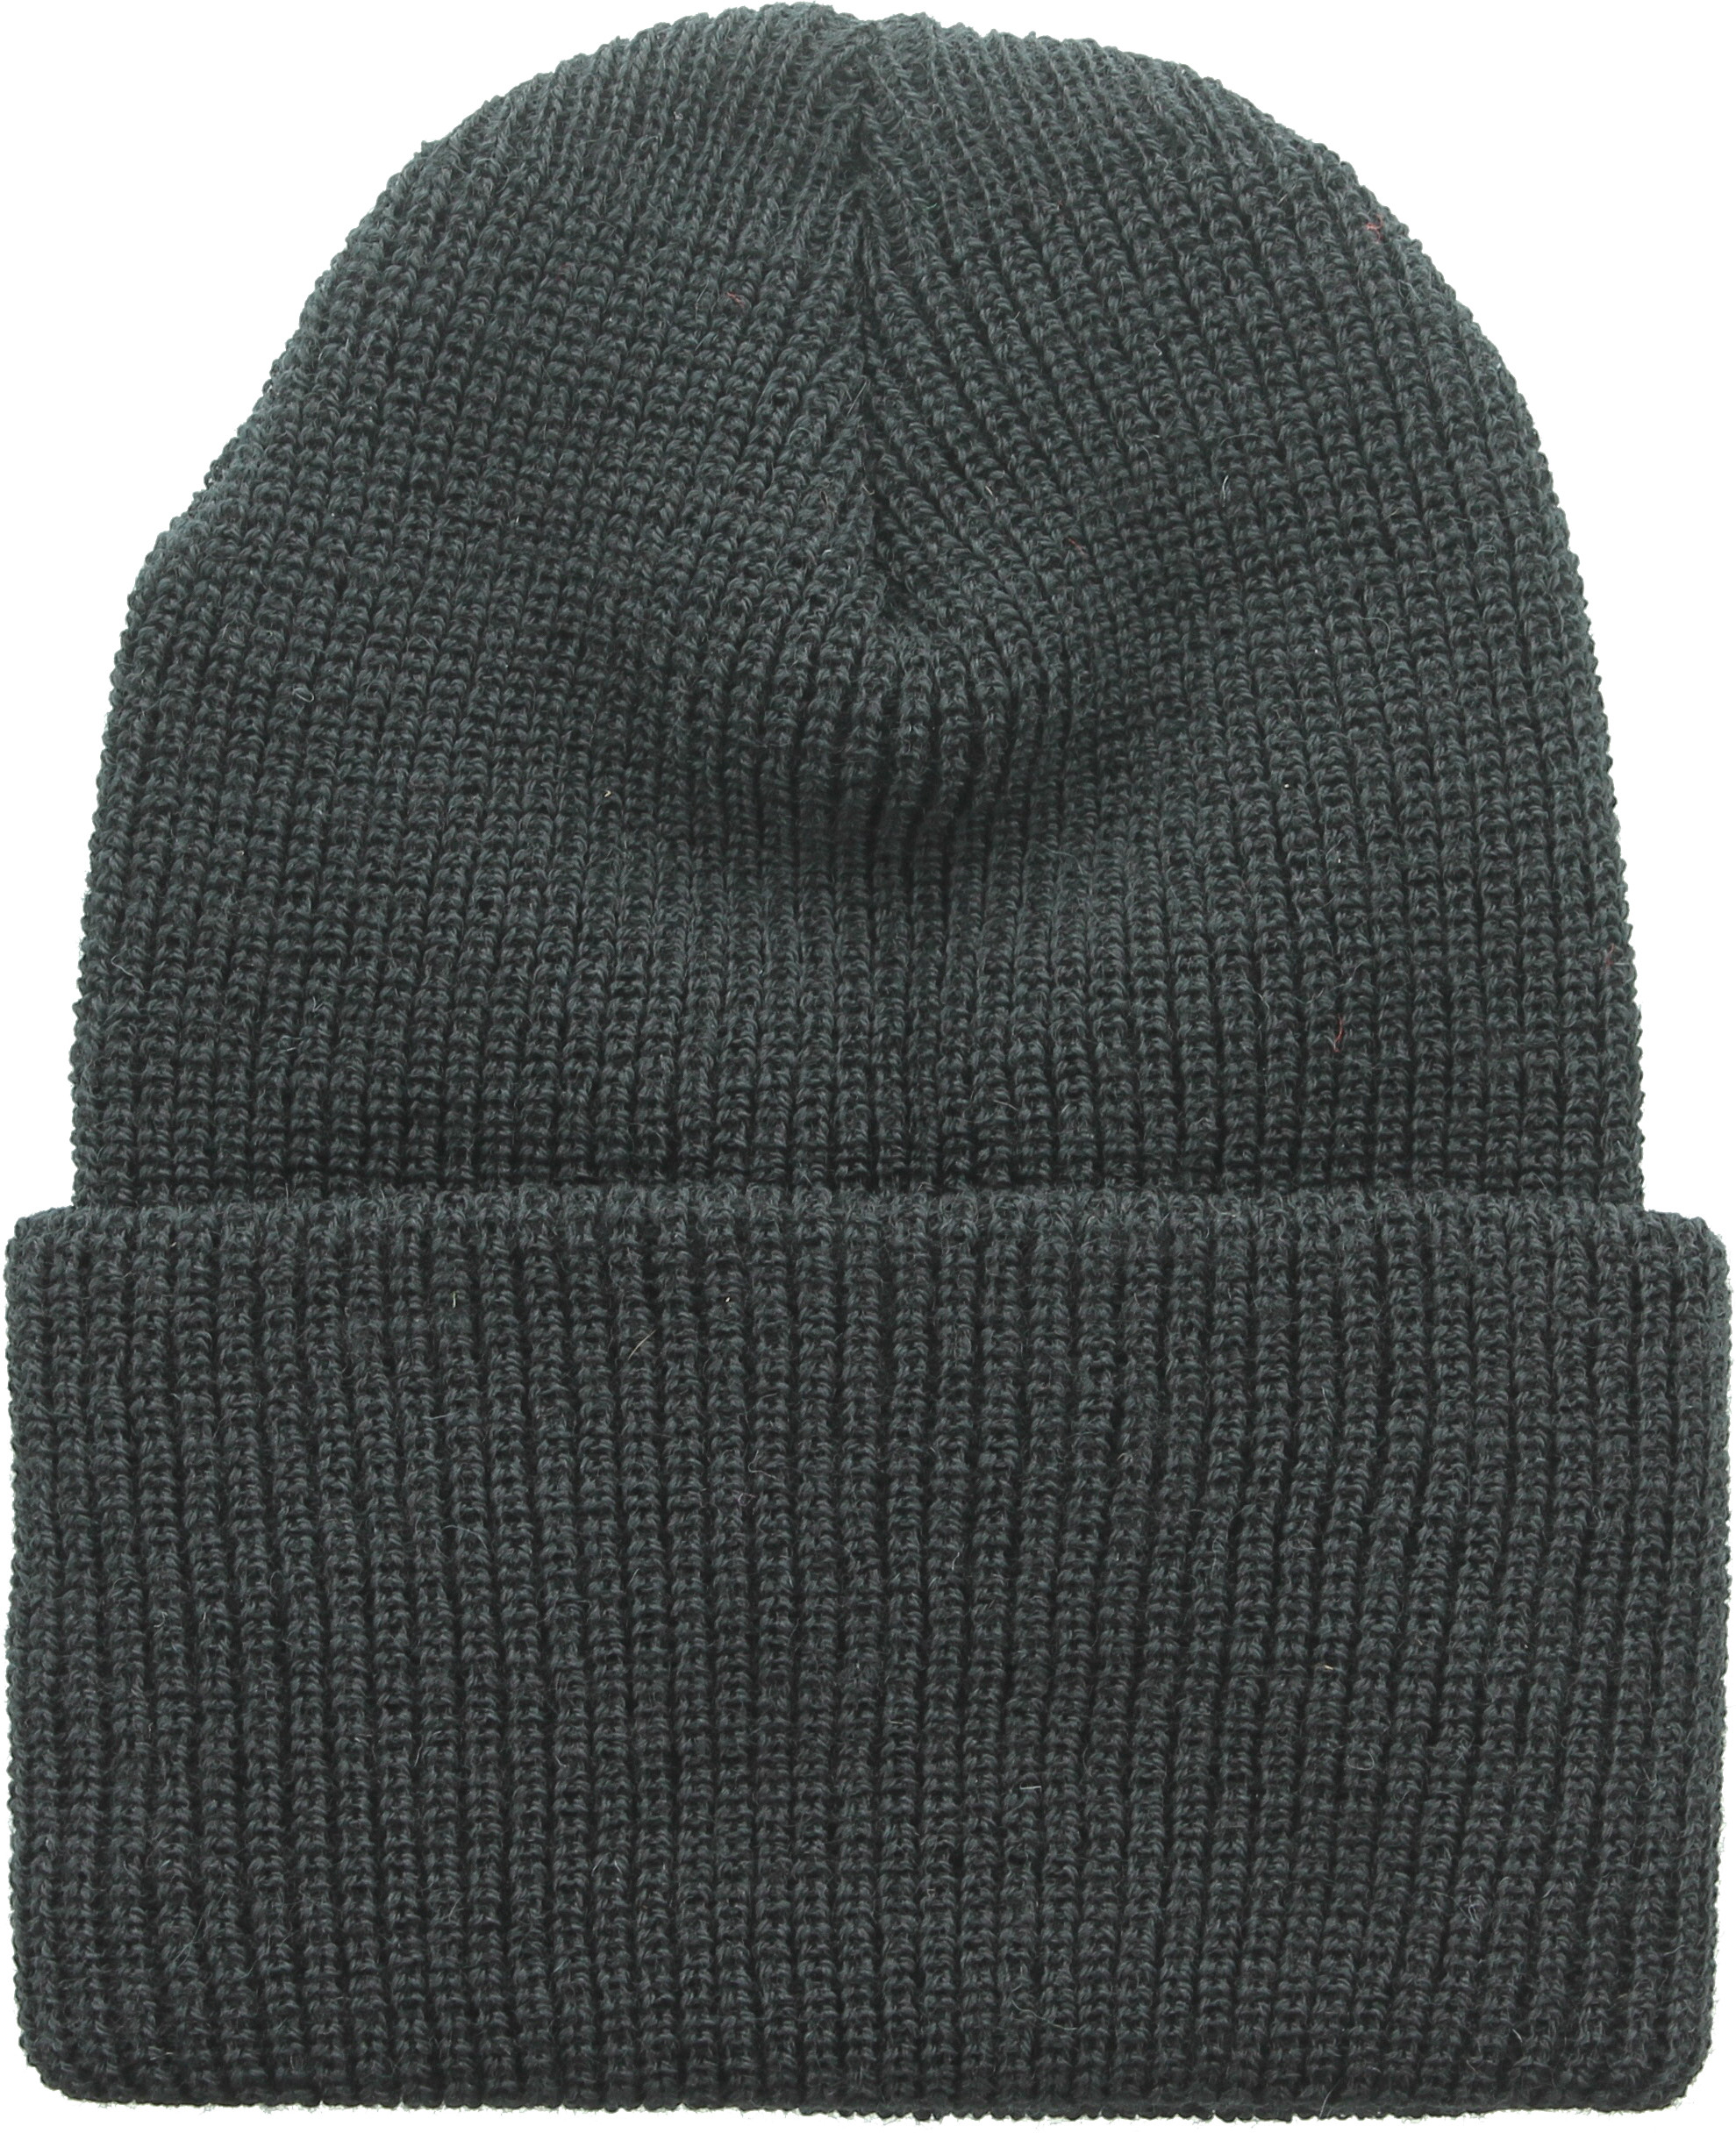 ada2e5bf84271 Heavyweight Worsted Wool Thick Ribbed Watch Cap Hat USA Made